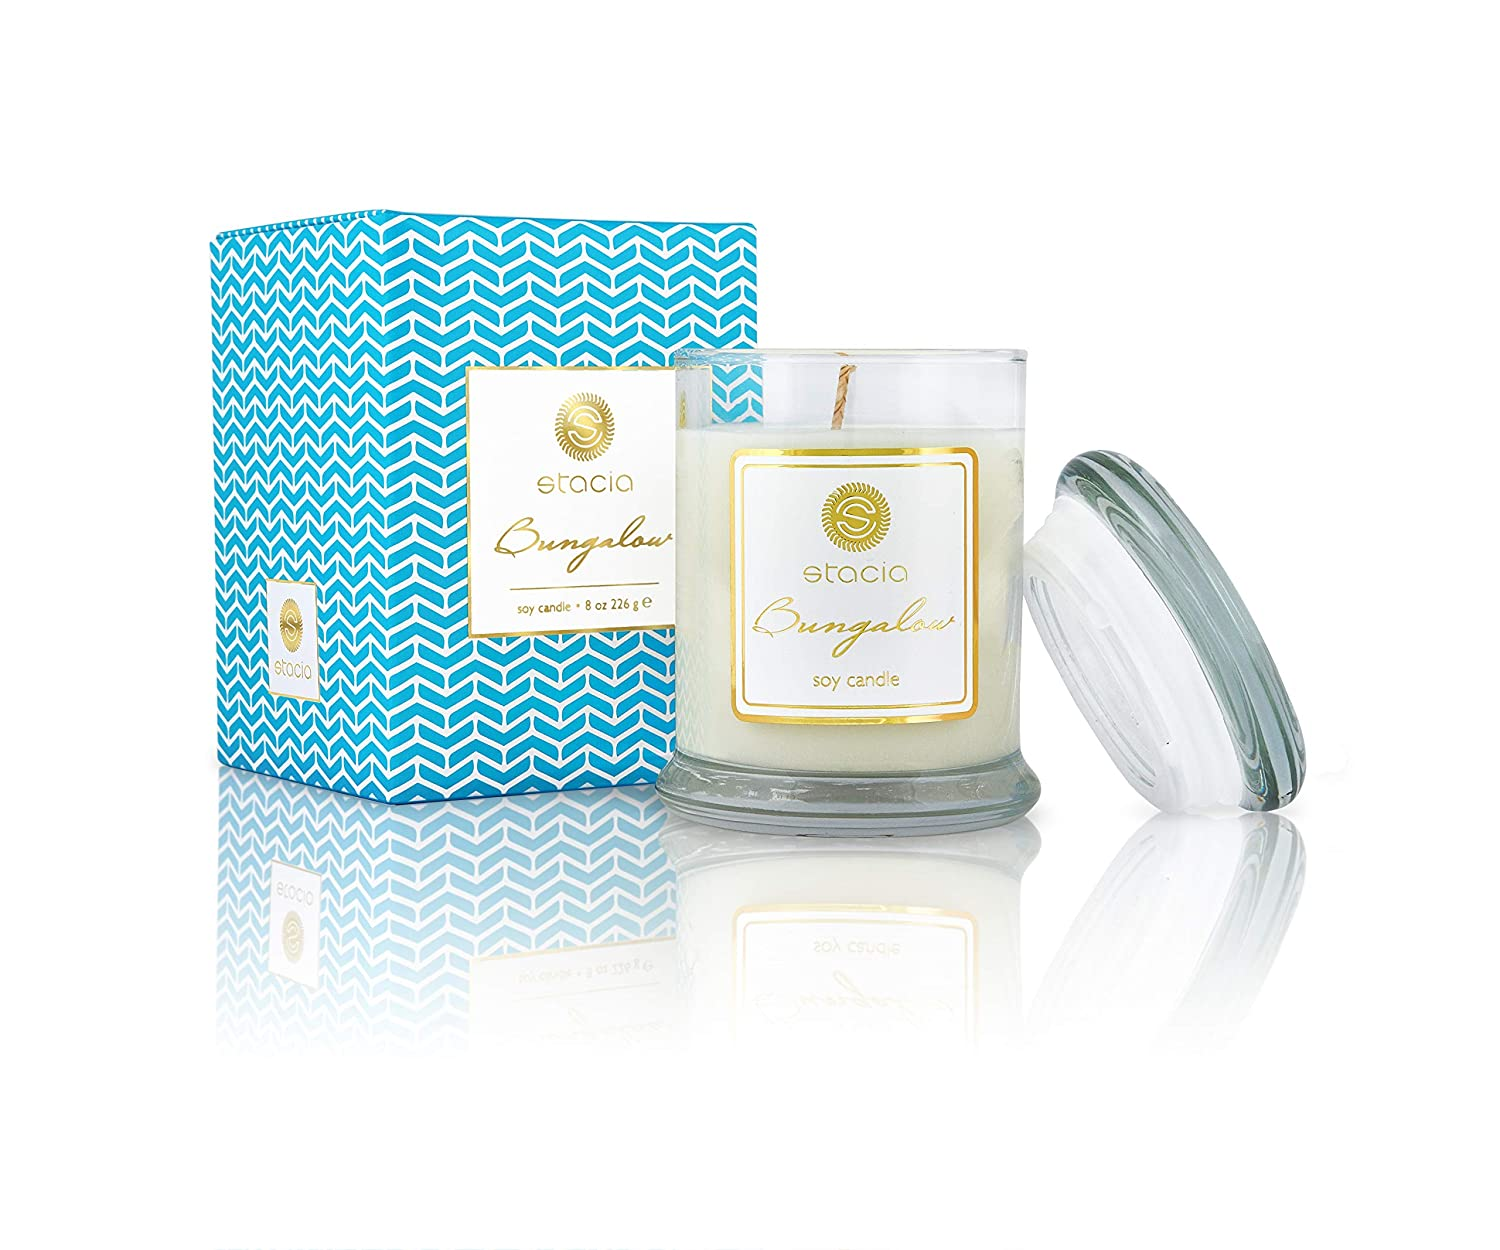 Bungalow Soy Candle (Bungalow)